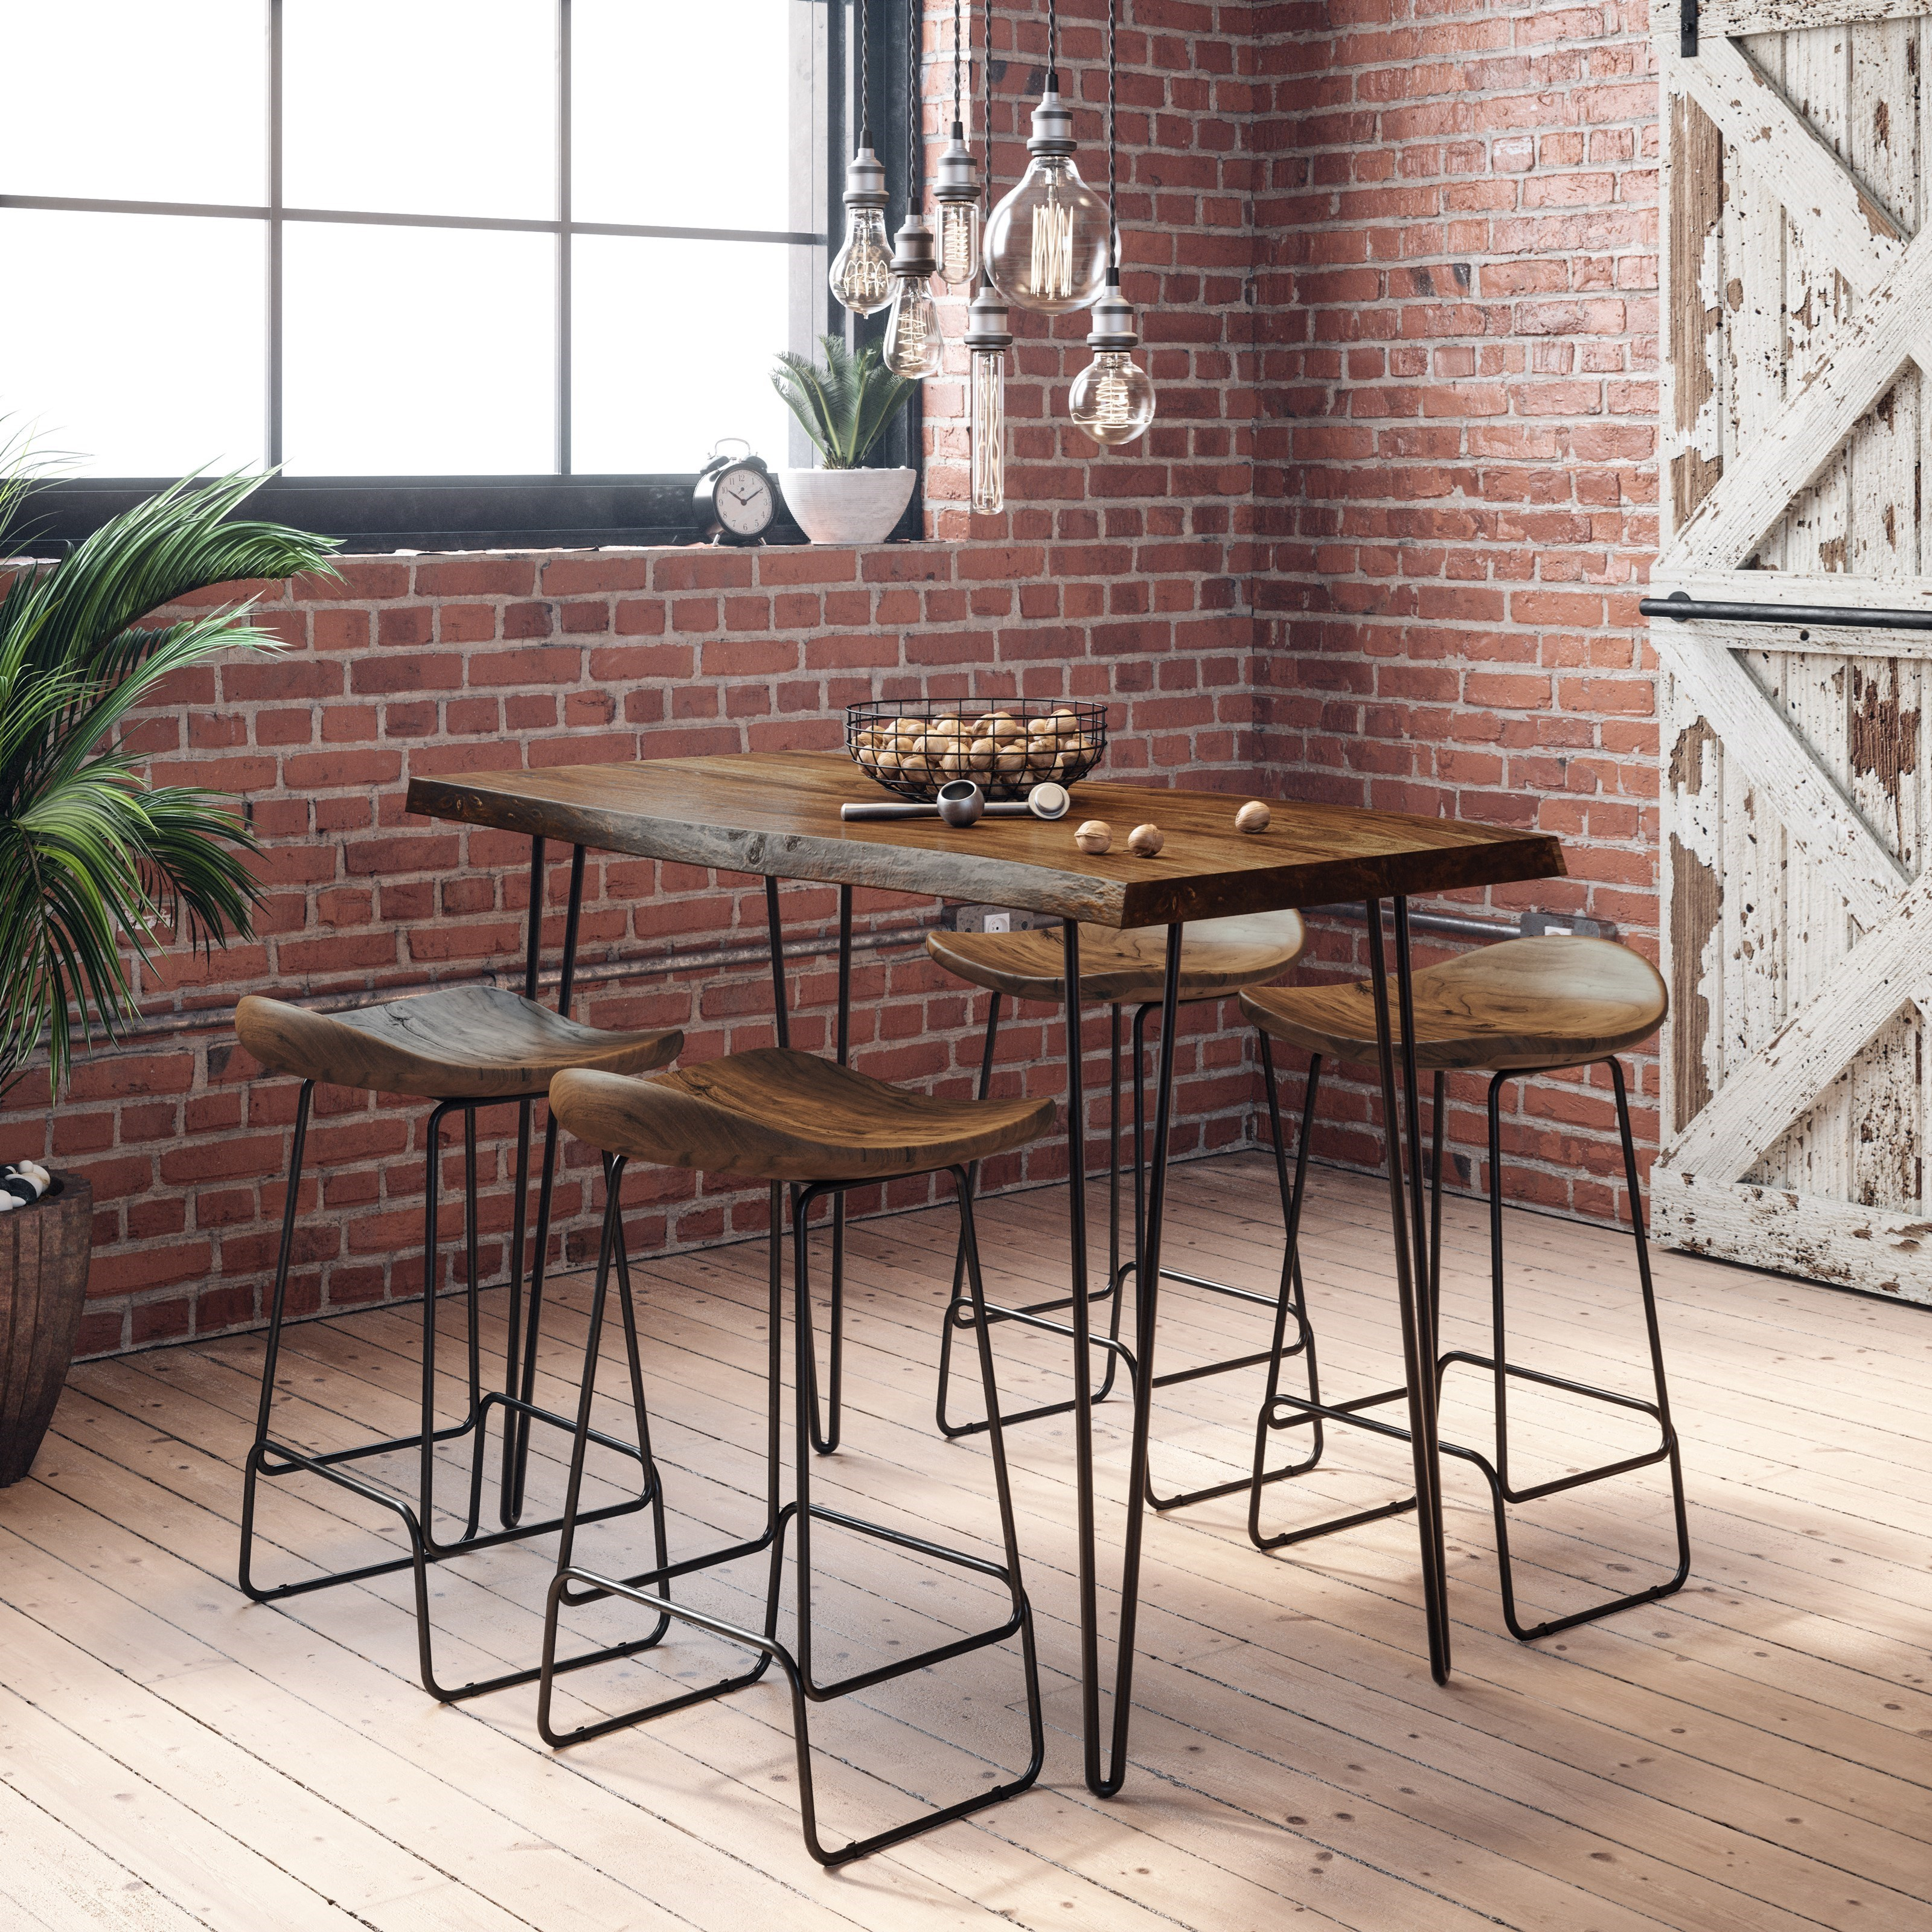 Nature's Edge 5-Piece Counter Table and Stool Set by Jofran at Stuckey Furniture